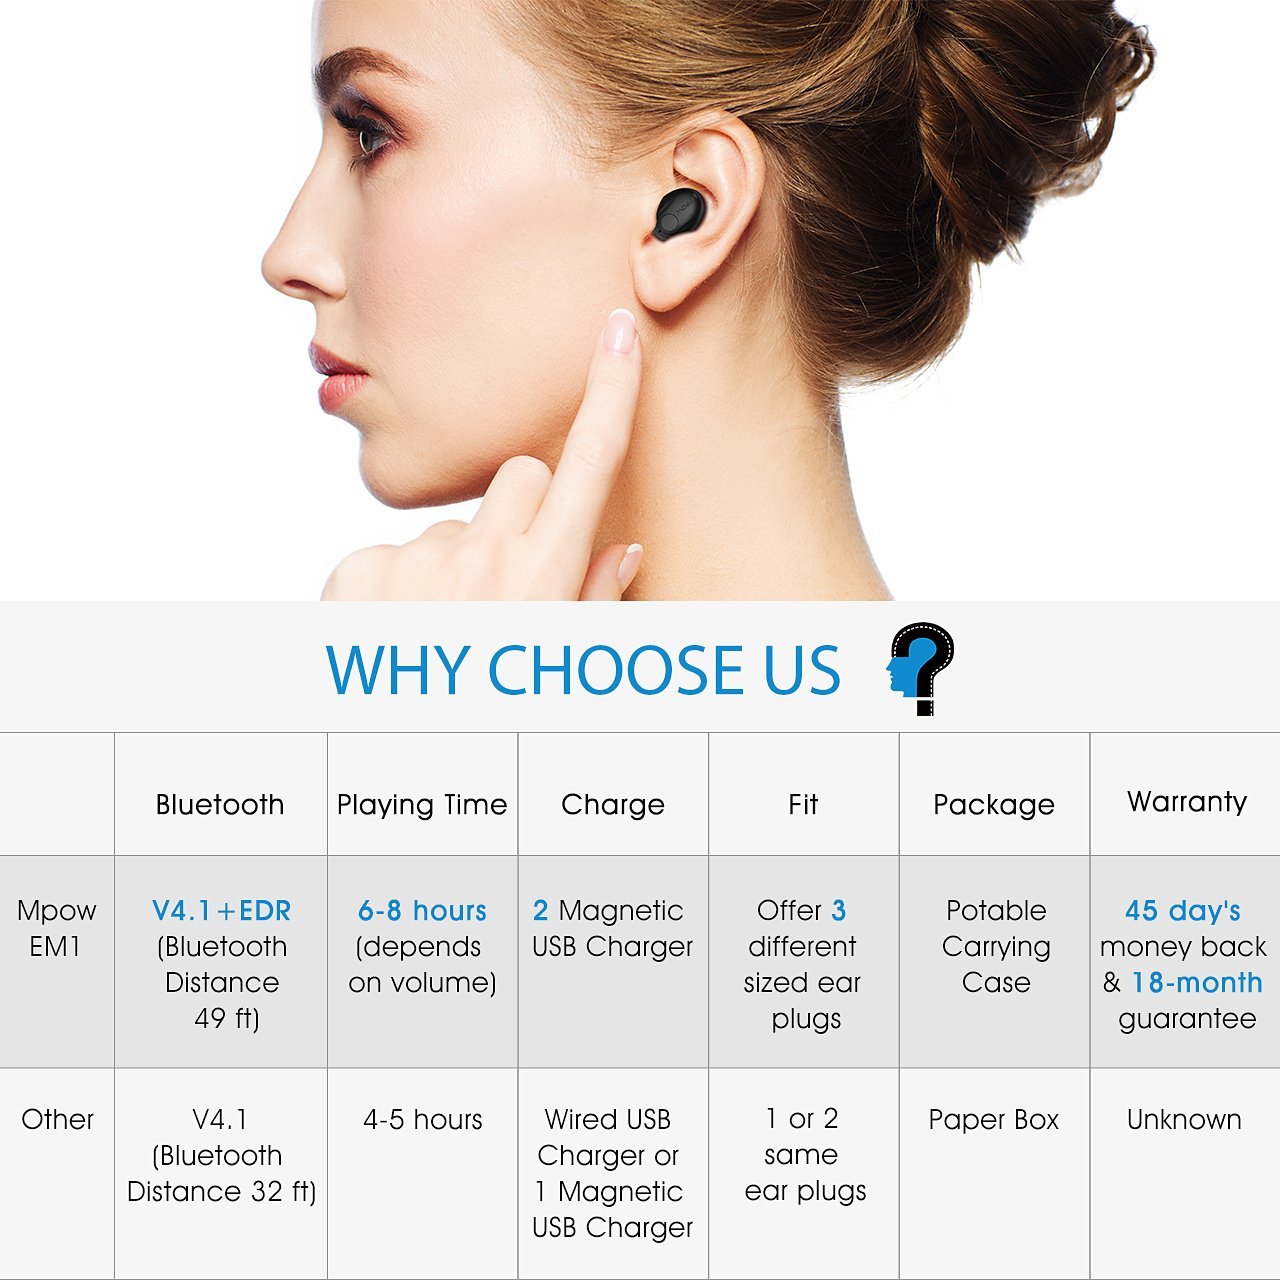 Mpow EM1 Bluetooth Earpiece, V4.1 Wireless Headphones, 6-Hr Playing Time Mini Bluetooth Earbud with Microphone, Invisible Car Bluetooth Headset for Cell Phone (One Pcs, Two Charger) by Mpow (Image #2)